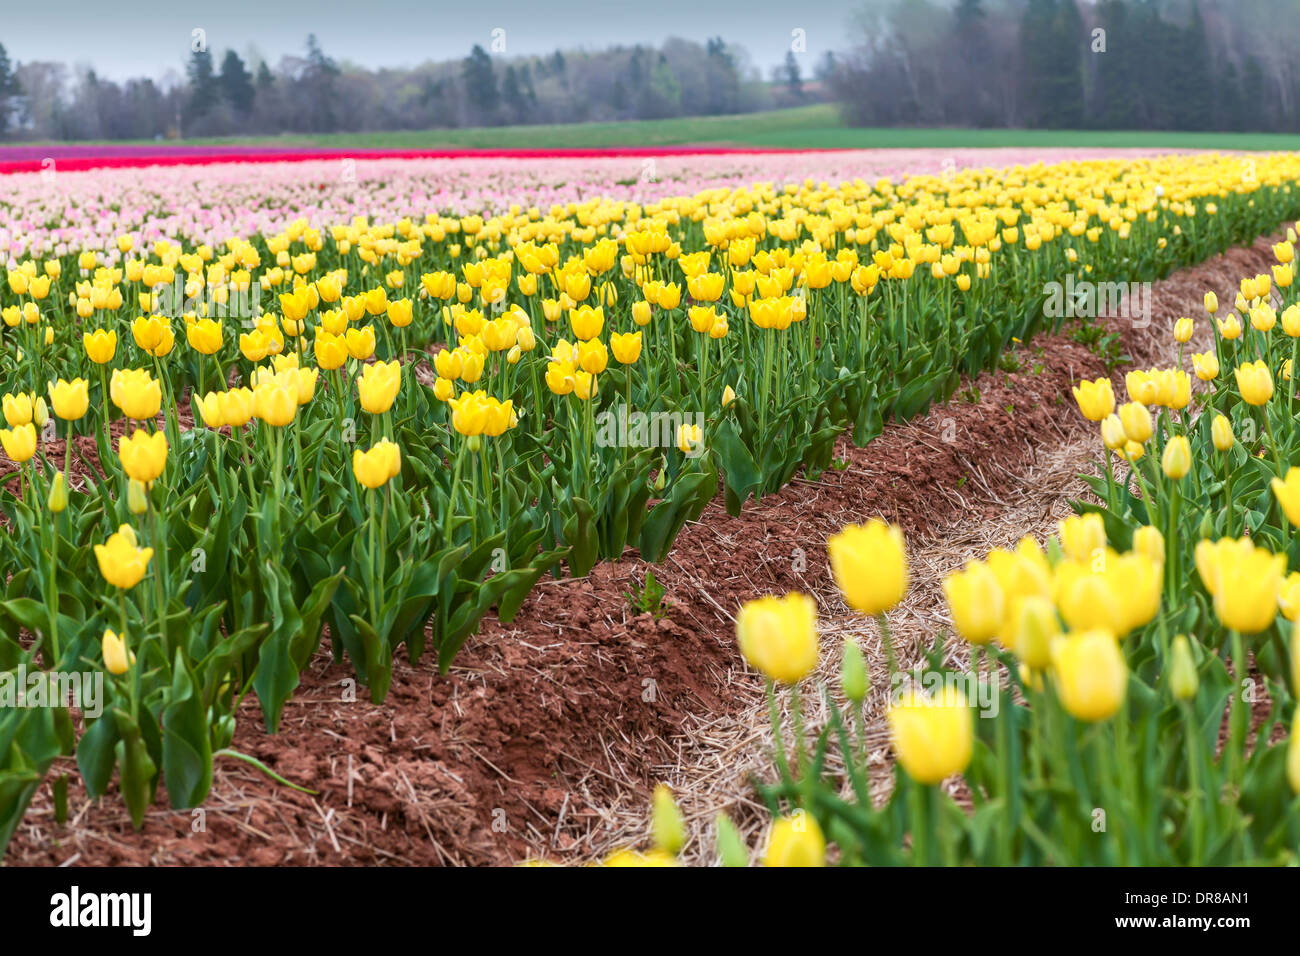 Rows of colorful spring tulips. Stock Photo